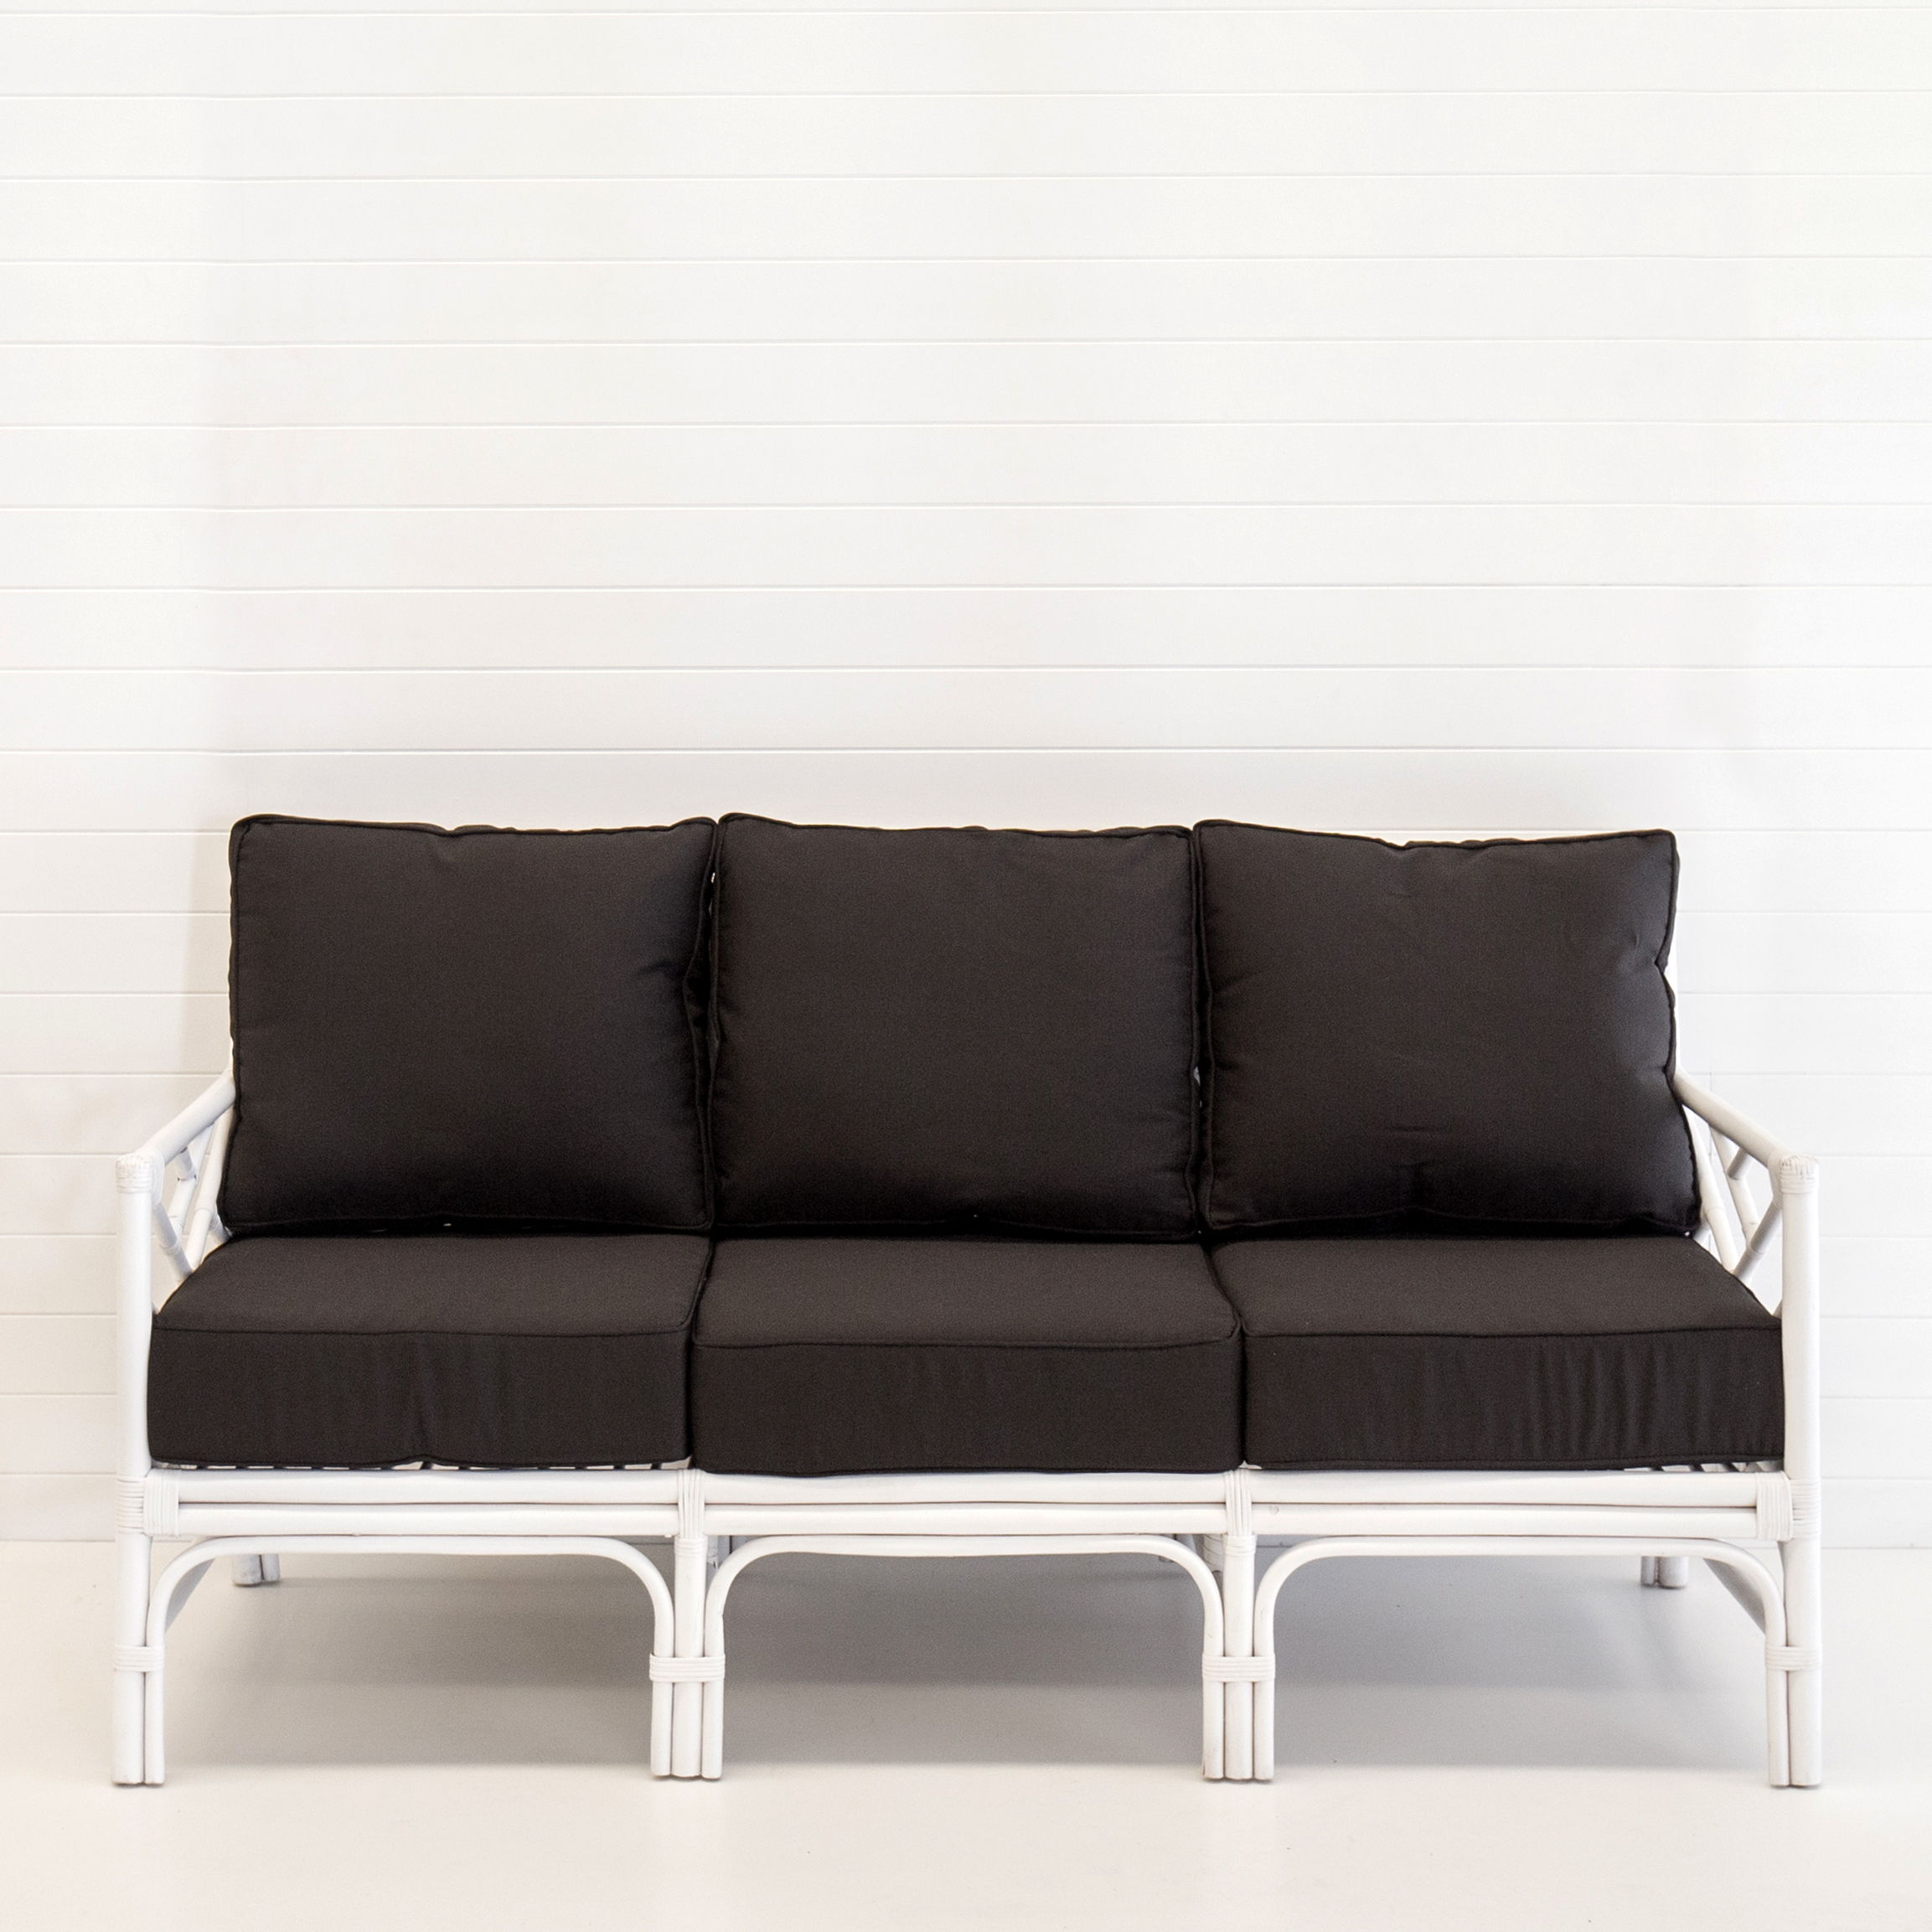 Hamptons white 3-seater sofa (with black cushions)